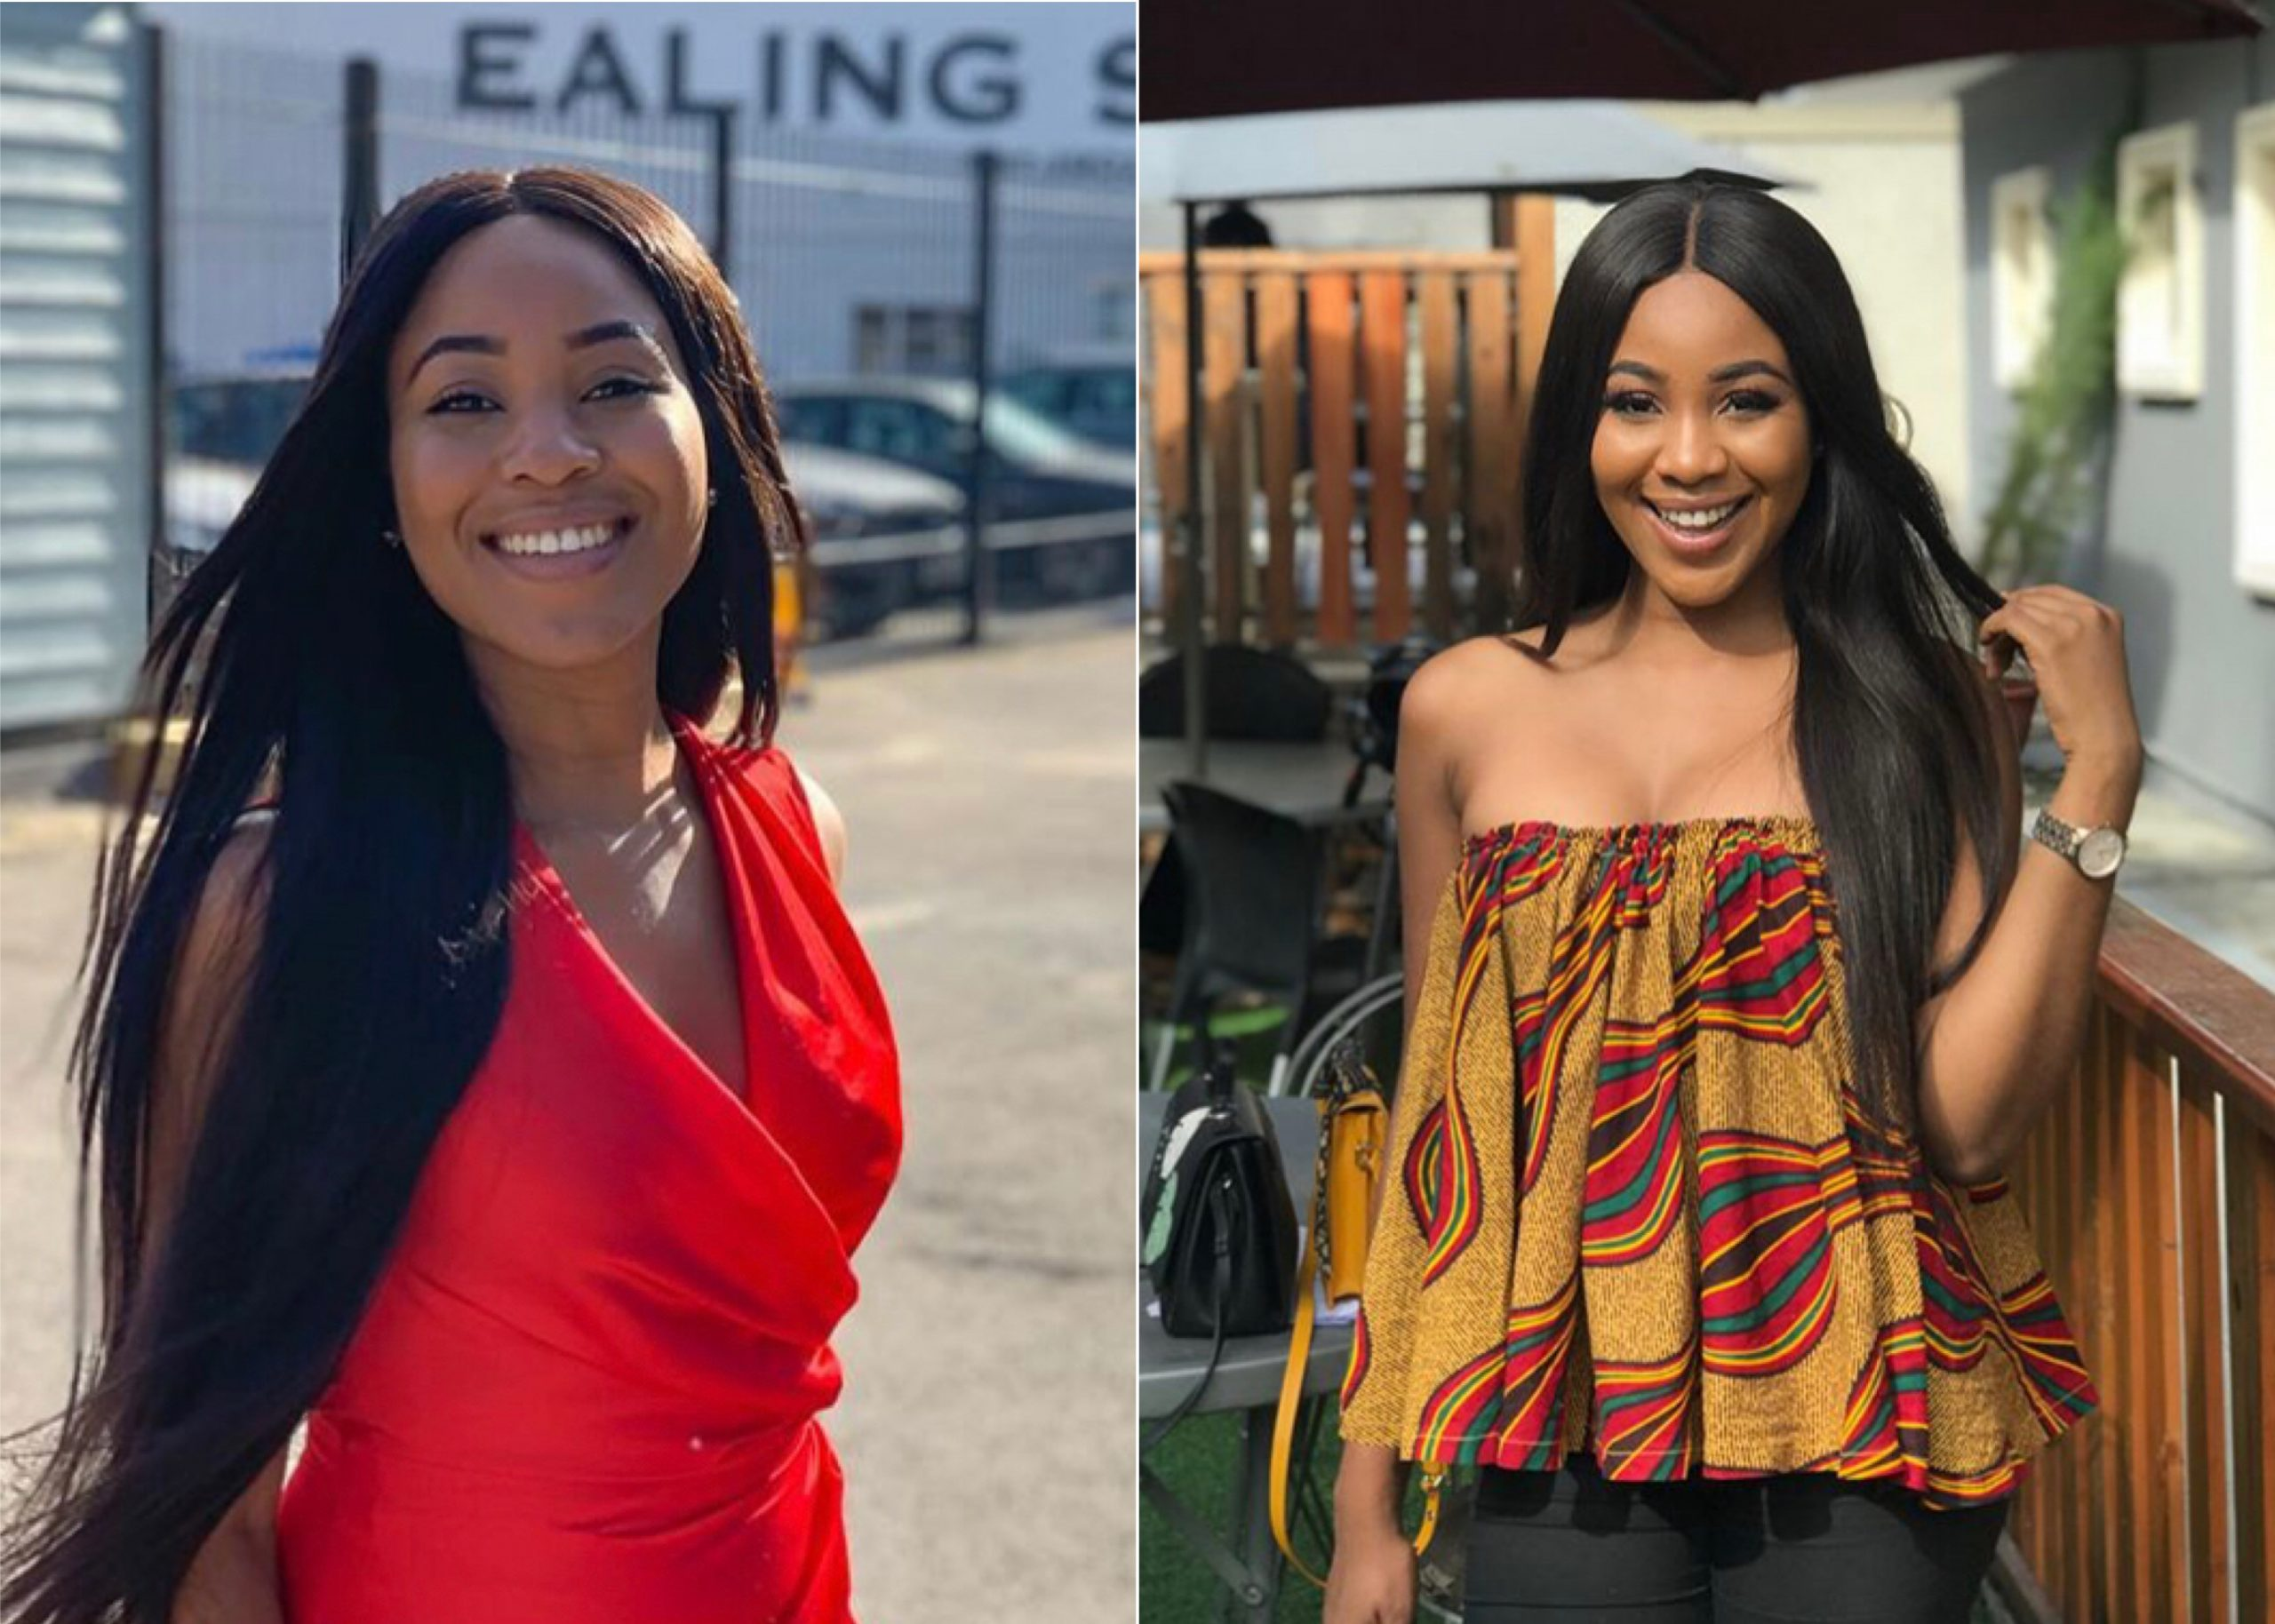 BBNaija 2020: Erica Nlewedim Speaks On Disqualification From Reality Show, Thanks Fans In First Instagram Post Since Exit